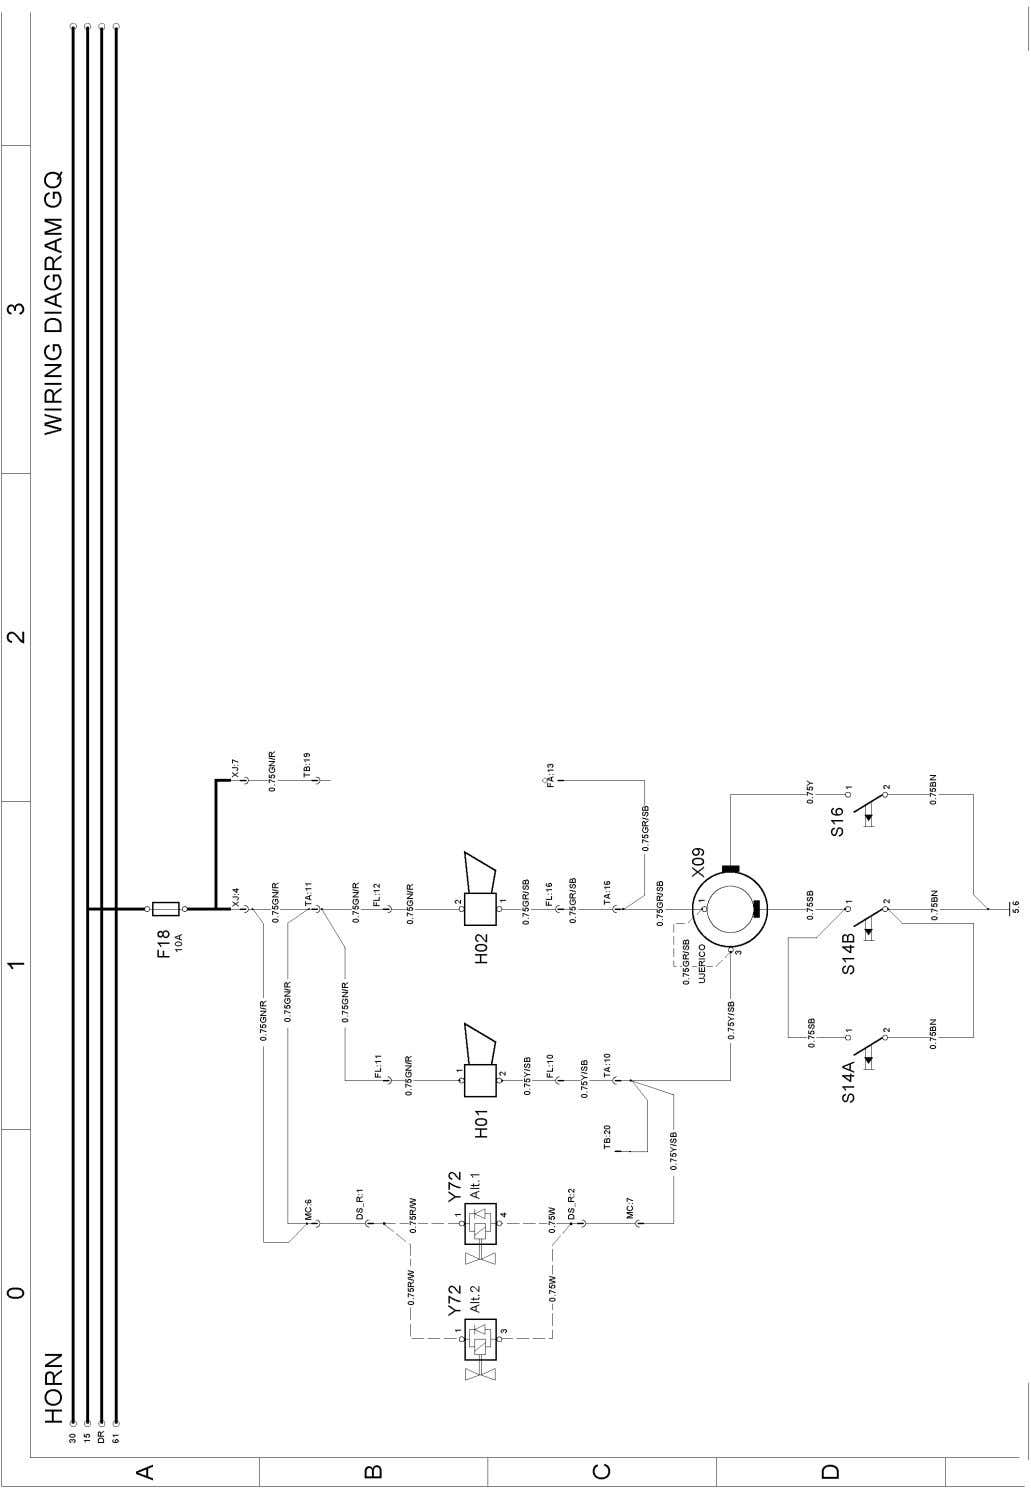 T3081938 Wiring diagram Page 73 (298)